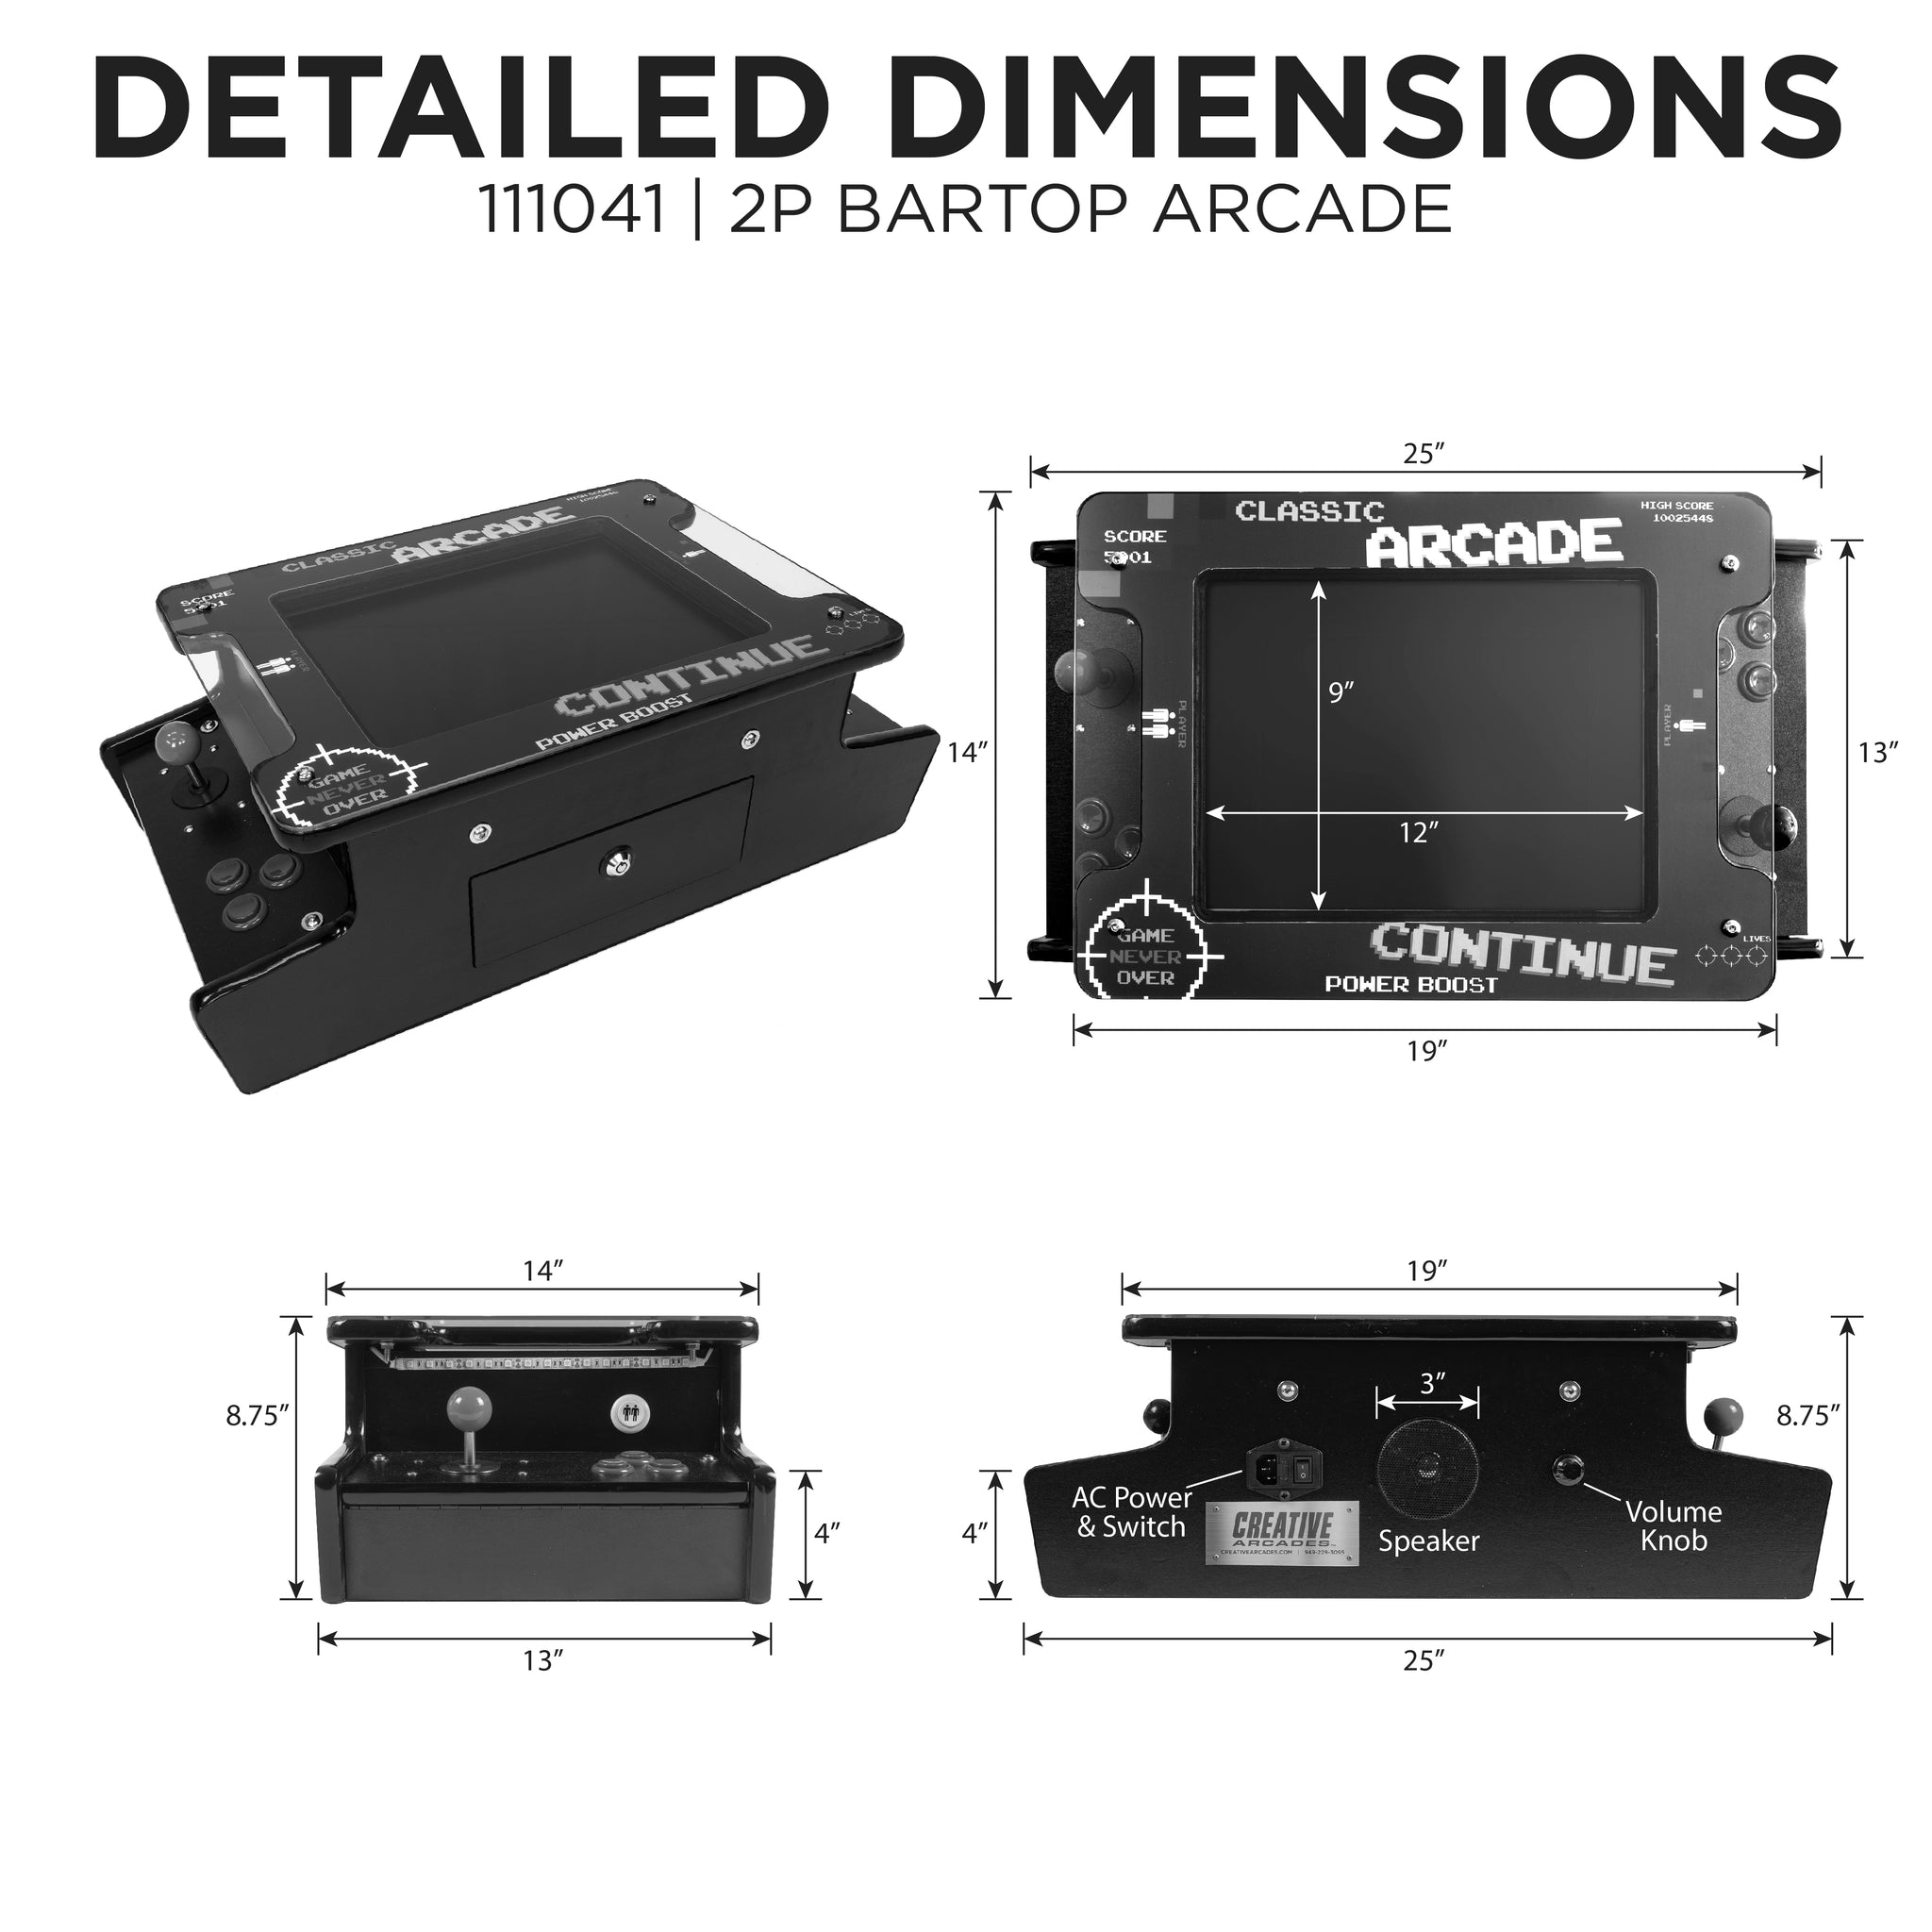 2P 412 Games Mini Tabletop Arcade Dimension